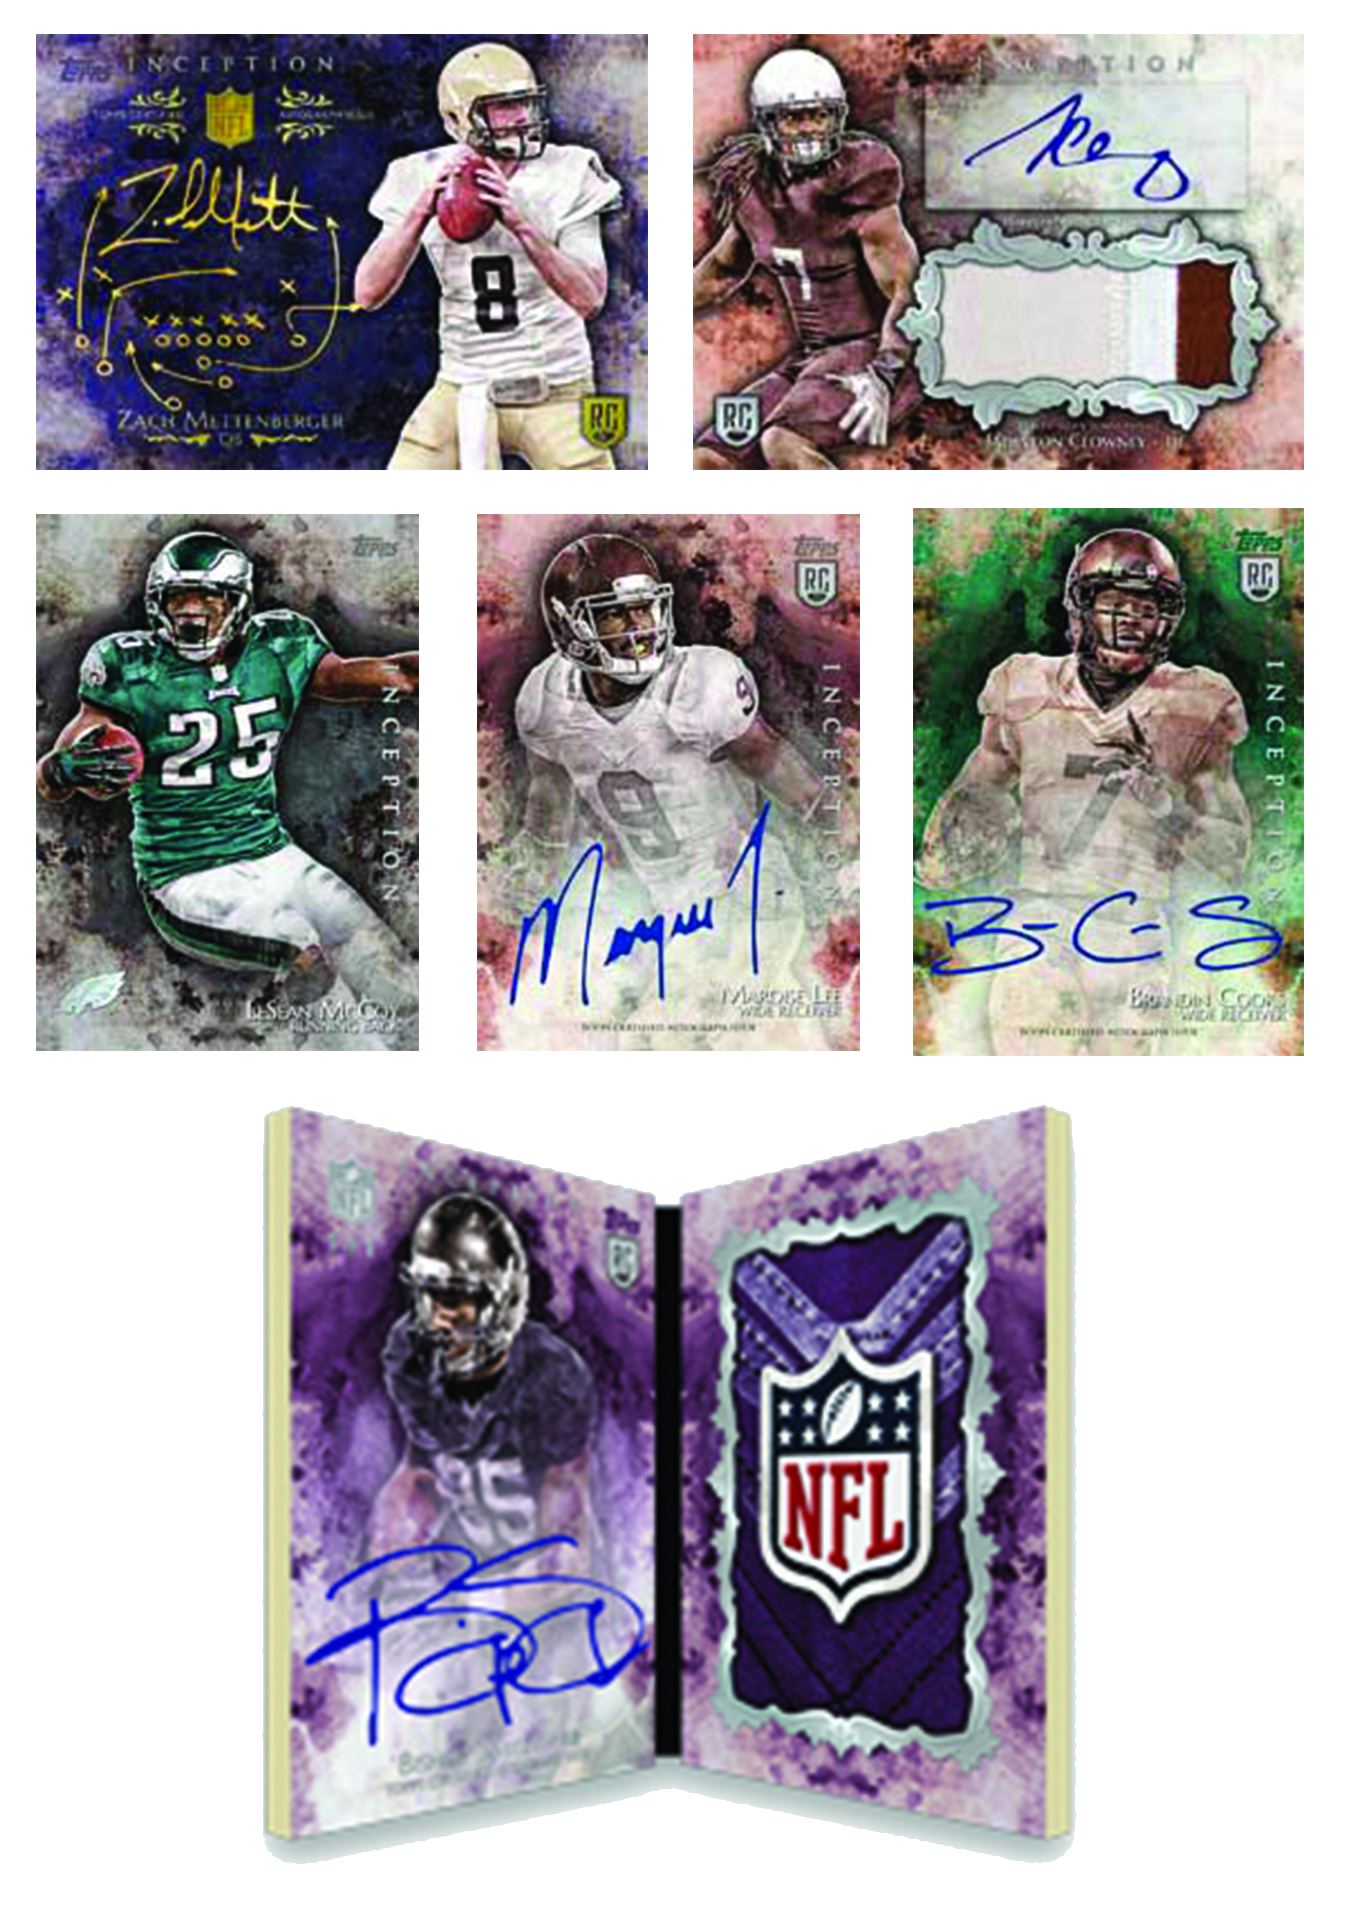 TOPPS 2014 INCEPTION FOOTBALL T/C BOX